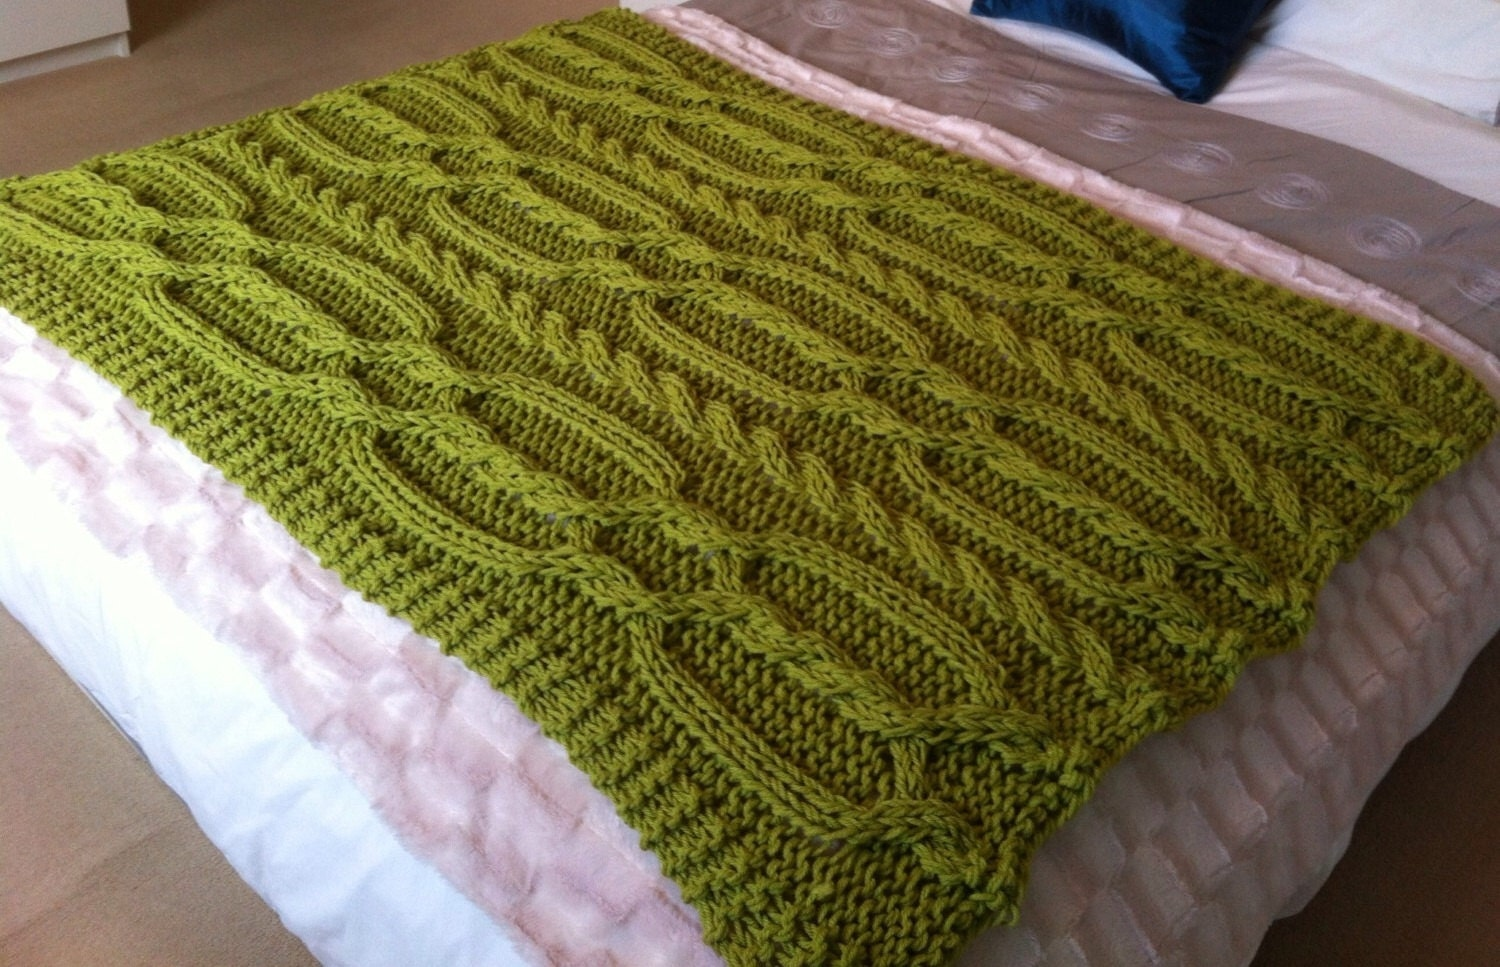 Cable Knit Throw Pattern : Snuggly Cable Blanket / Throw. Knitting pattern